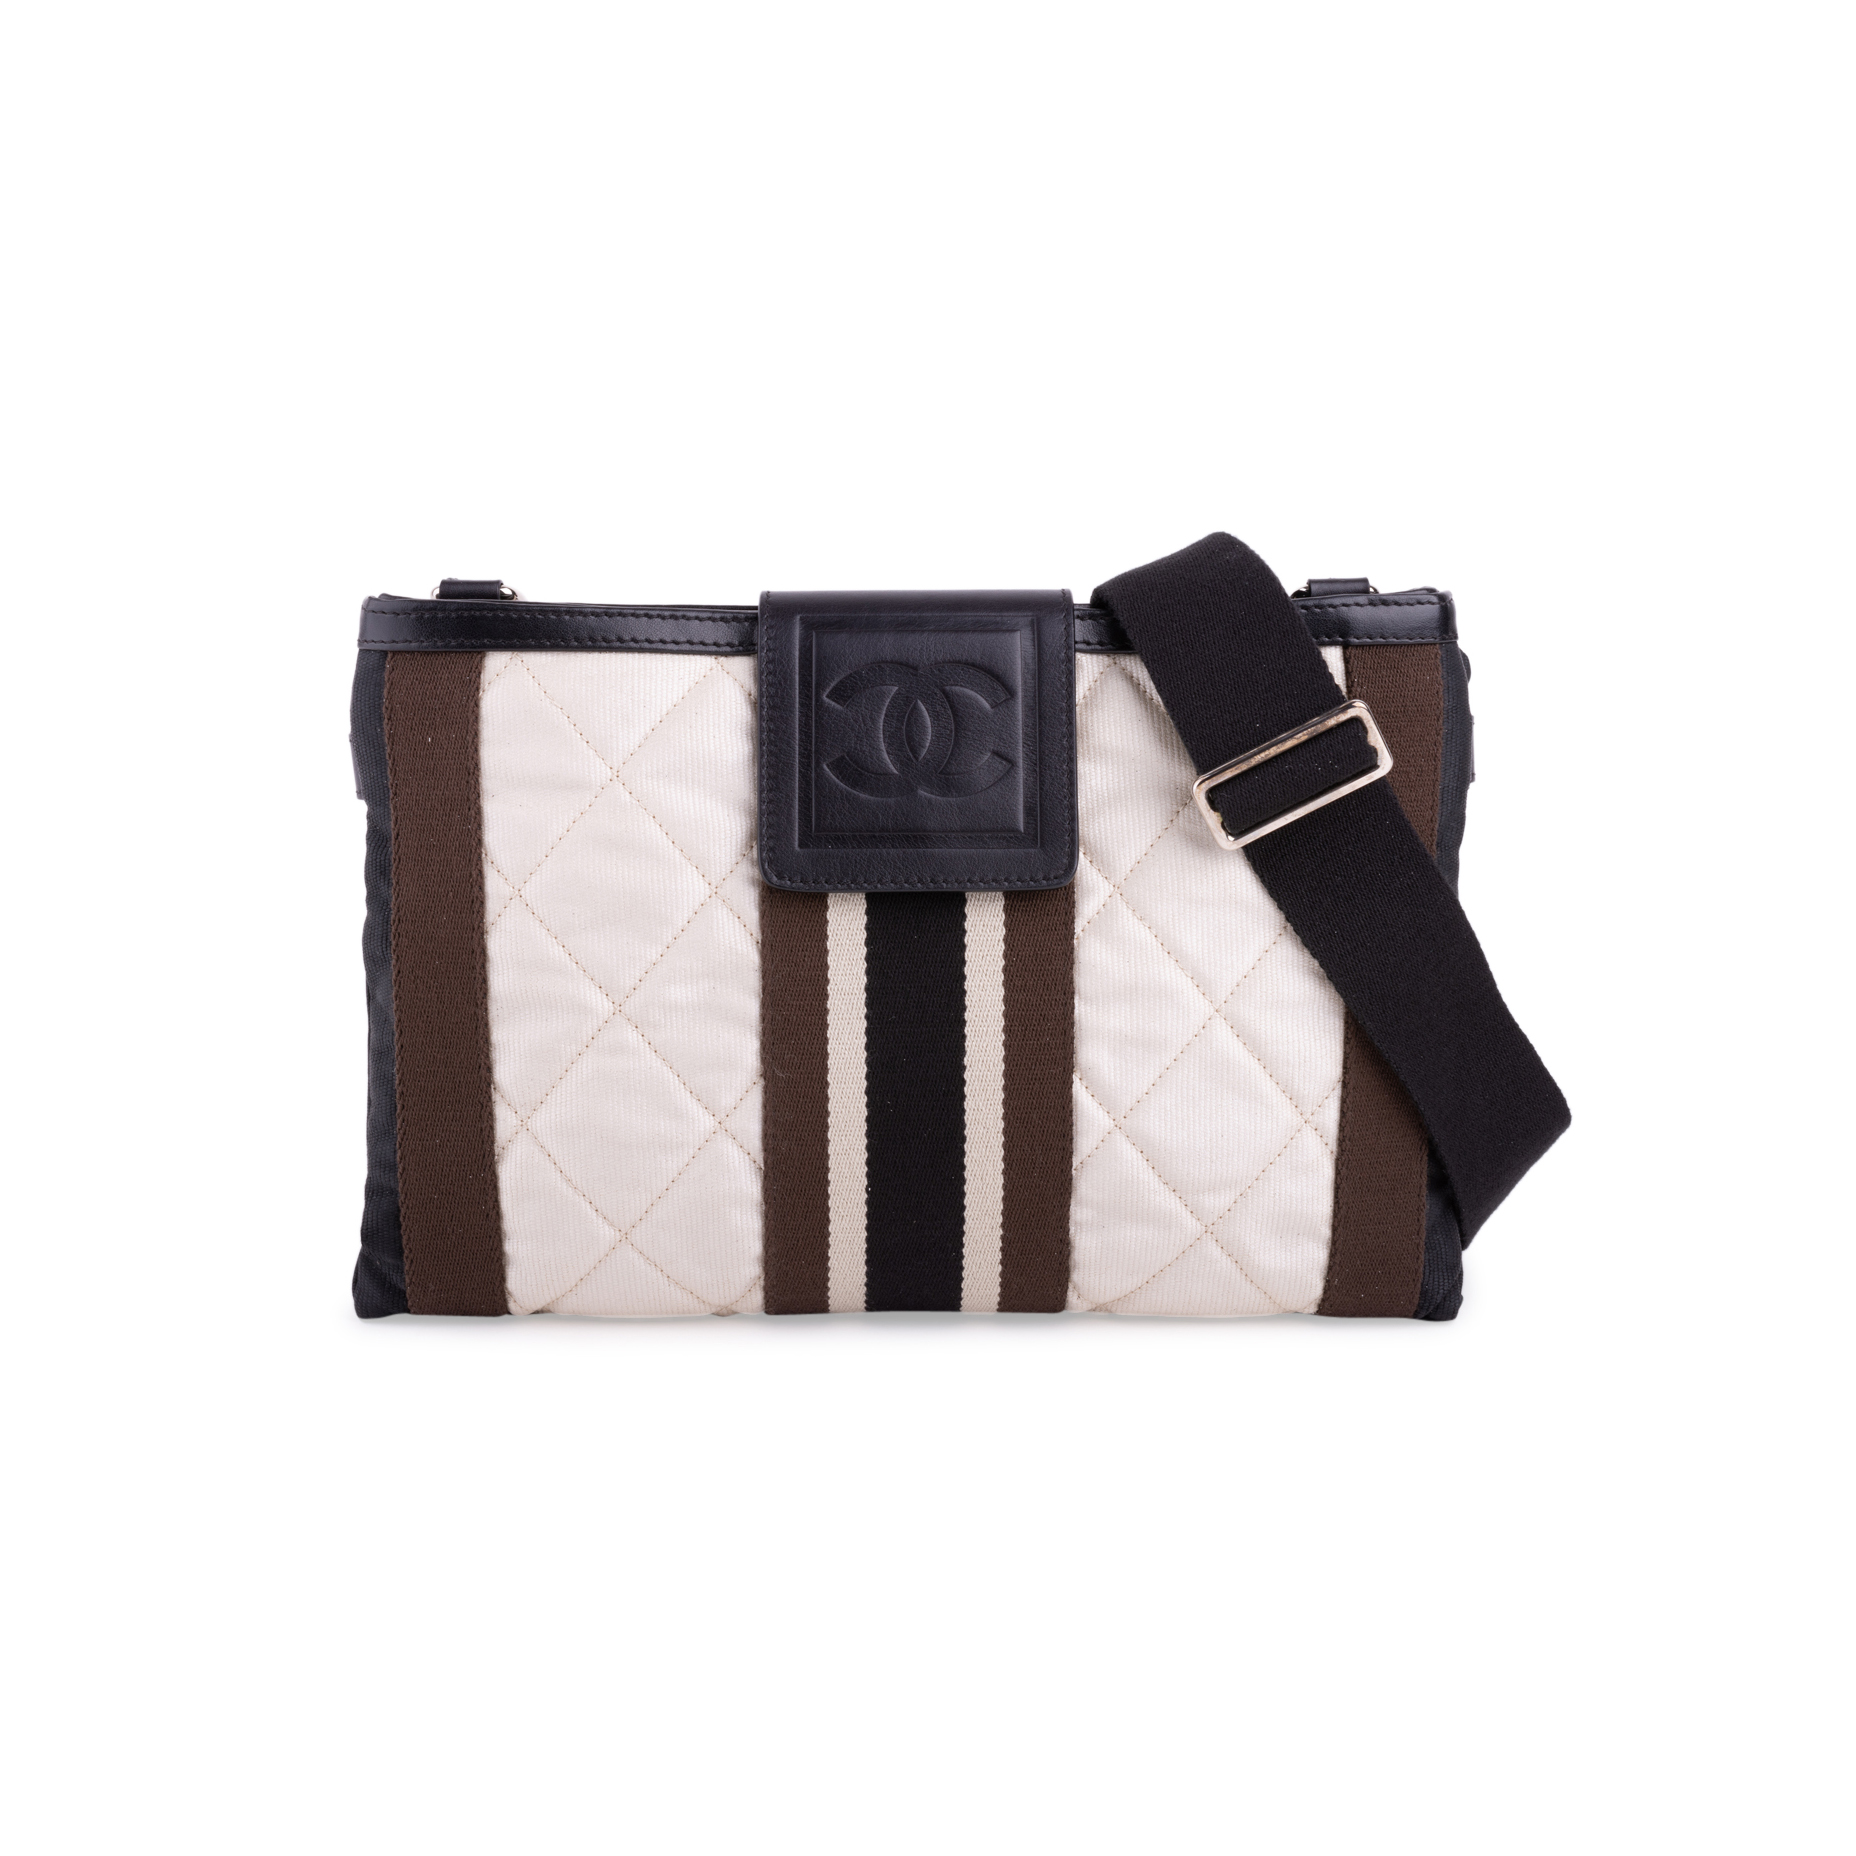 f6c93c1bc30ee1 Authentic Second Hand Chanel Sports Quilted Crossbody Bag (PSS-200-01670) |  THE FIFTH COLLECTION